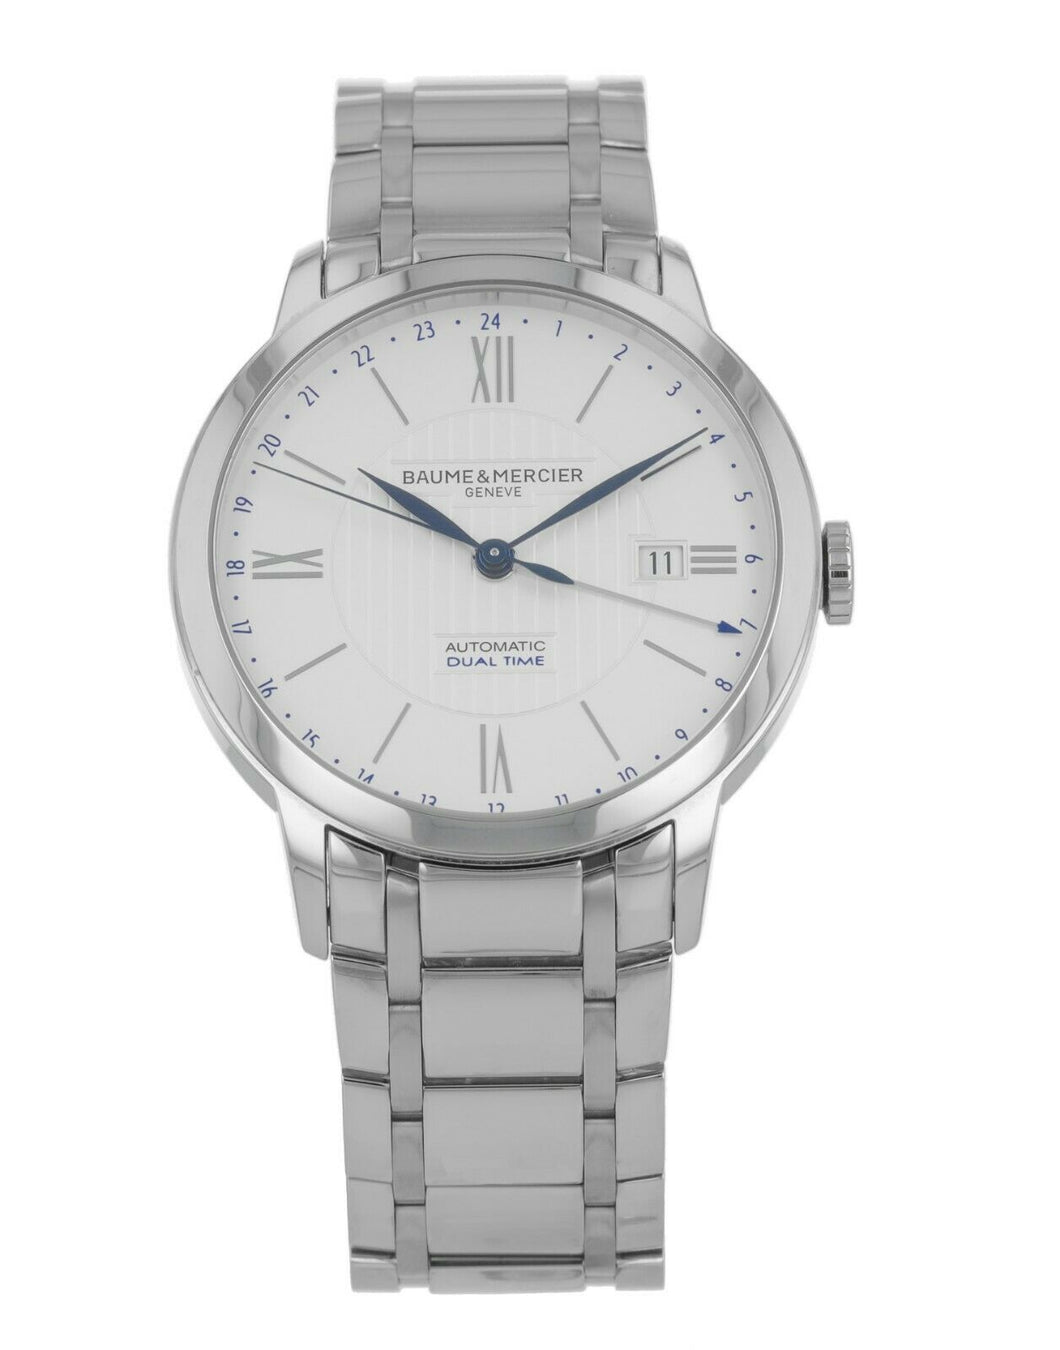 Baume & Mercier Classima Core Automatic Dual Time Men's 40mm Watch M0A10273